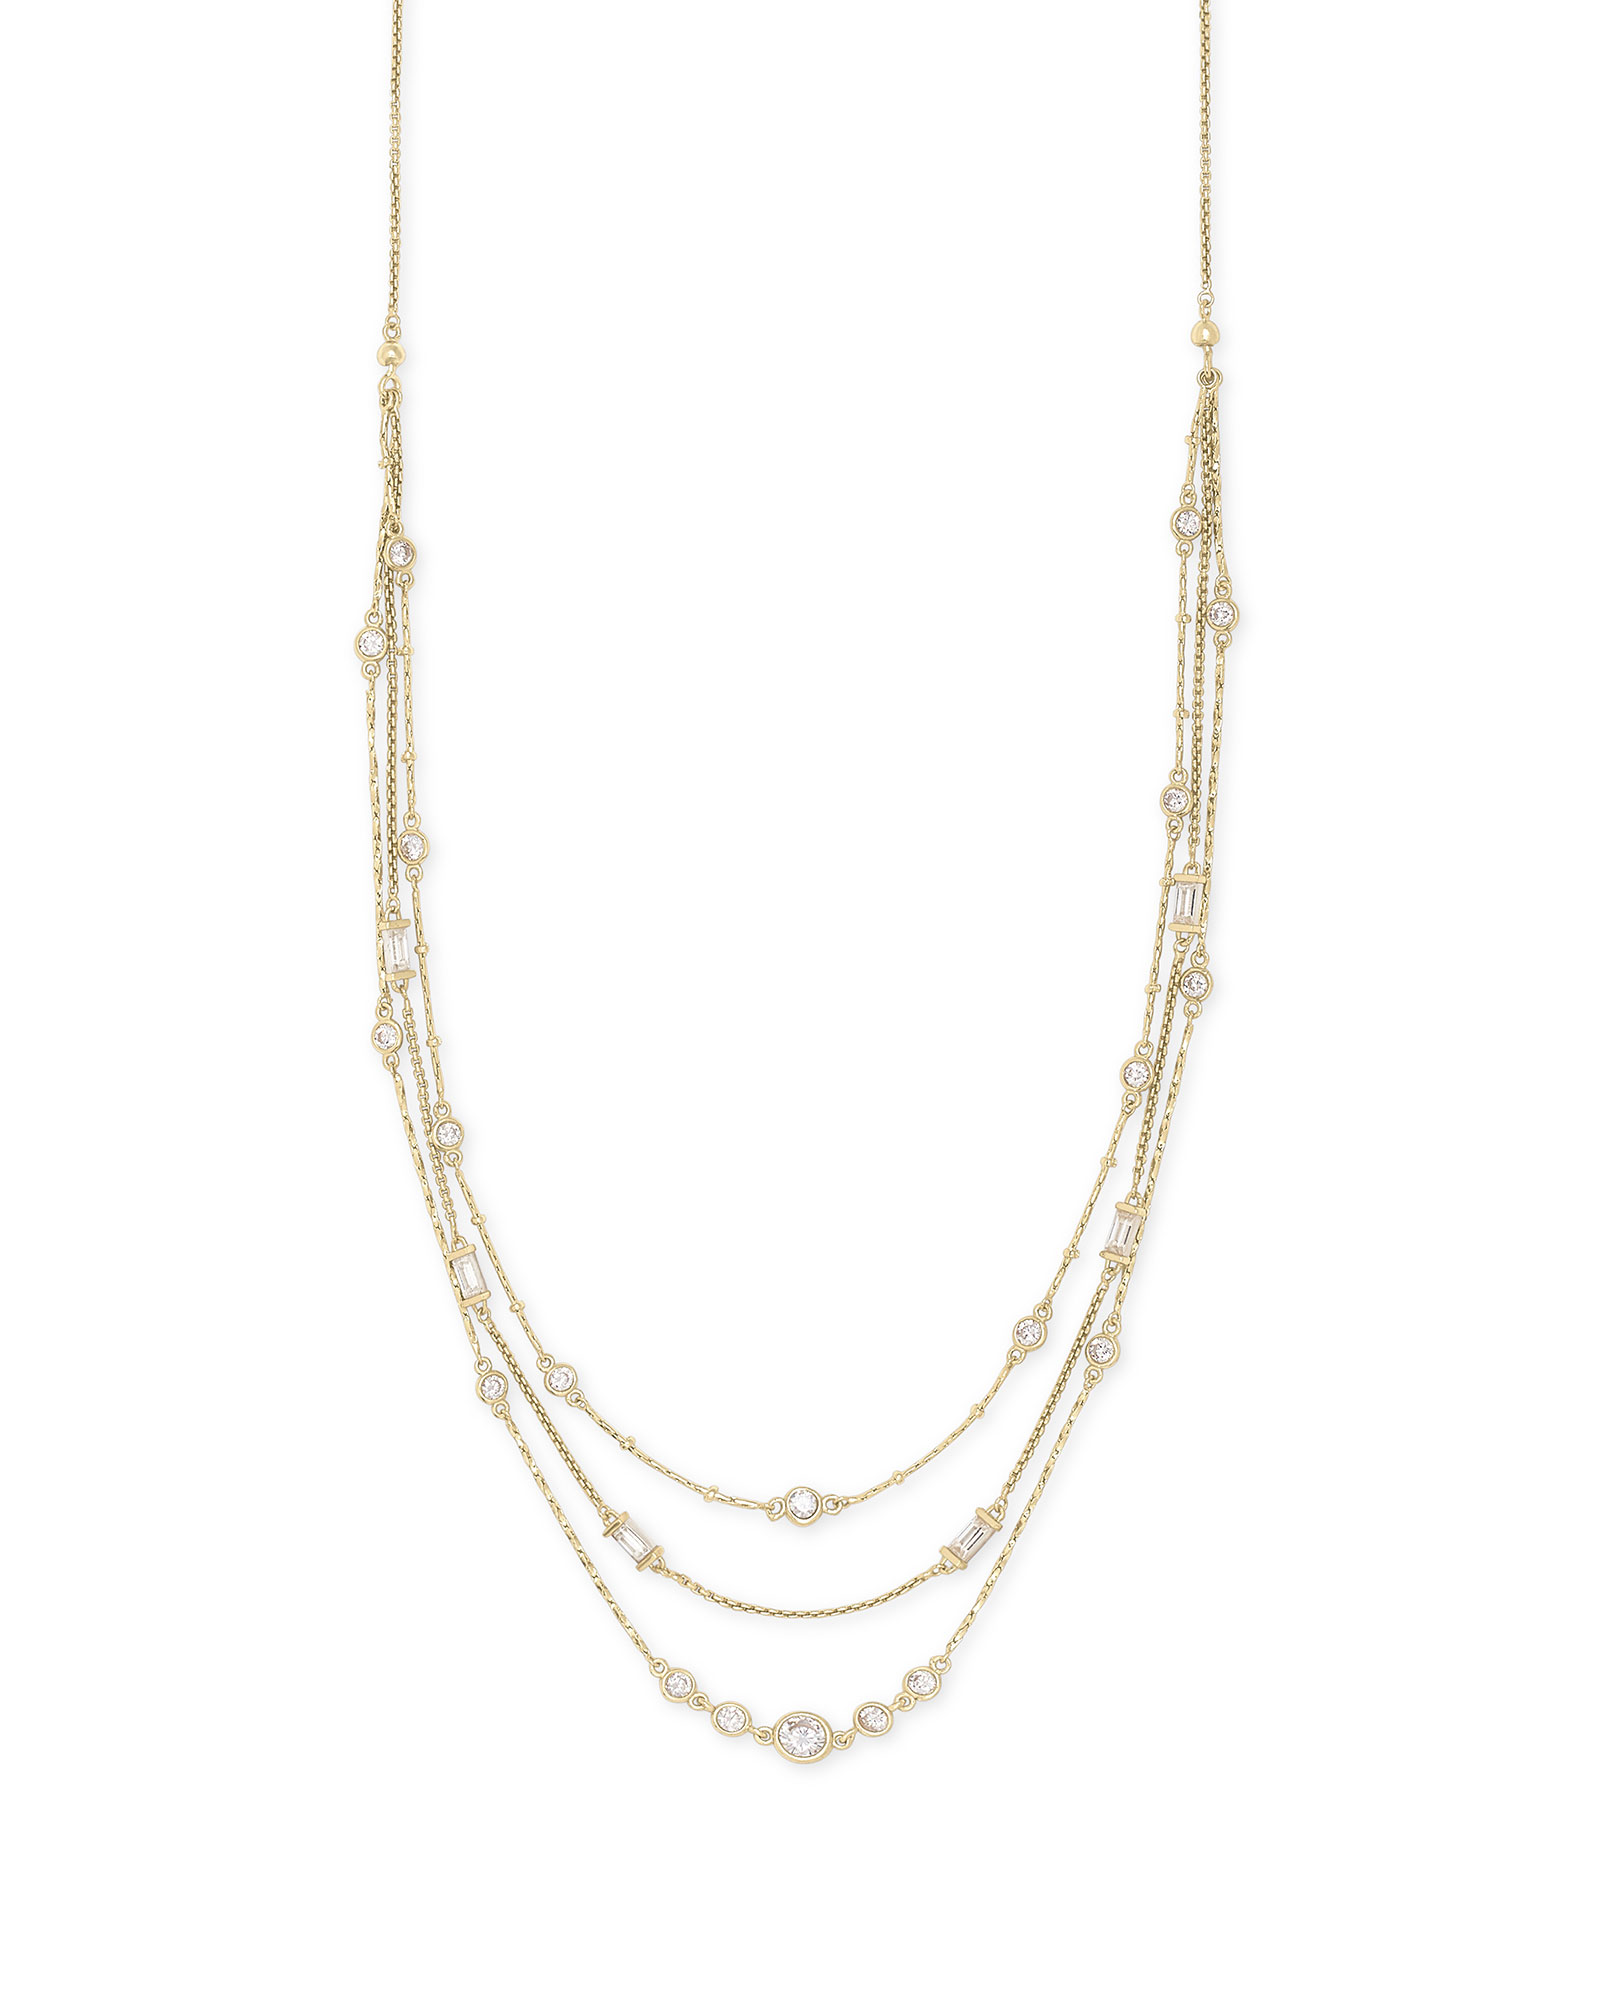 Rina Gold Multi Strand Necklace in Lustre Glass